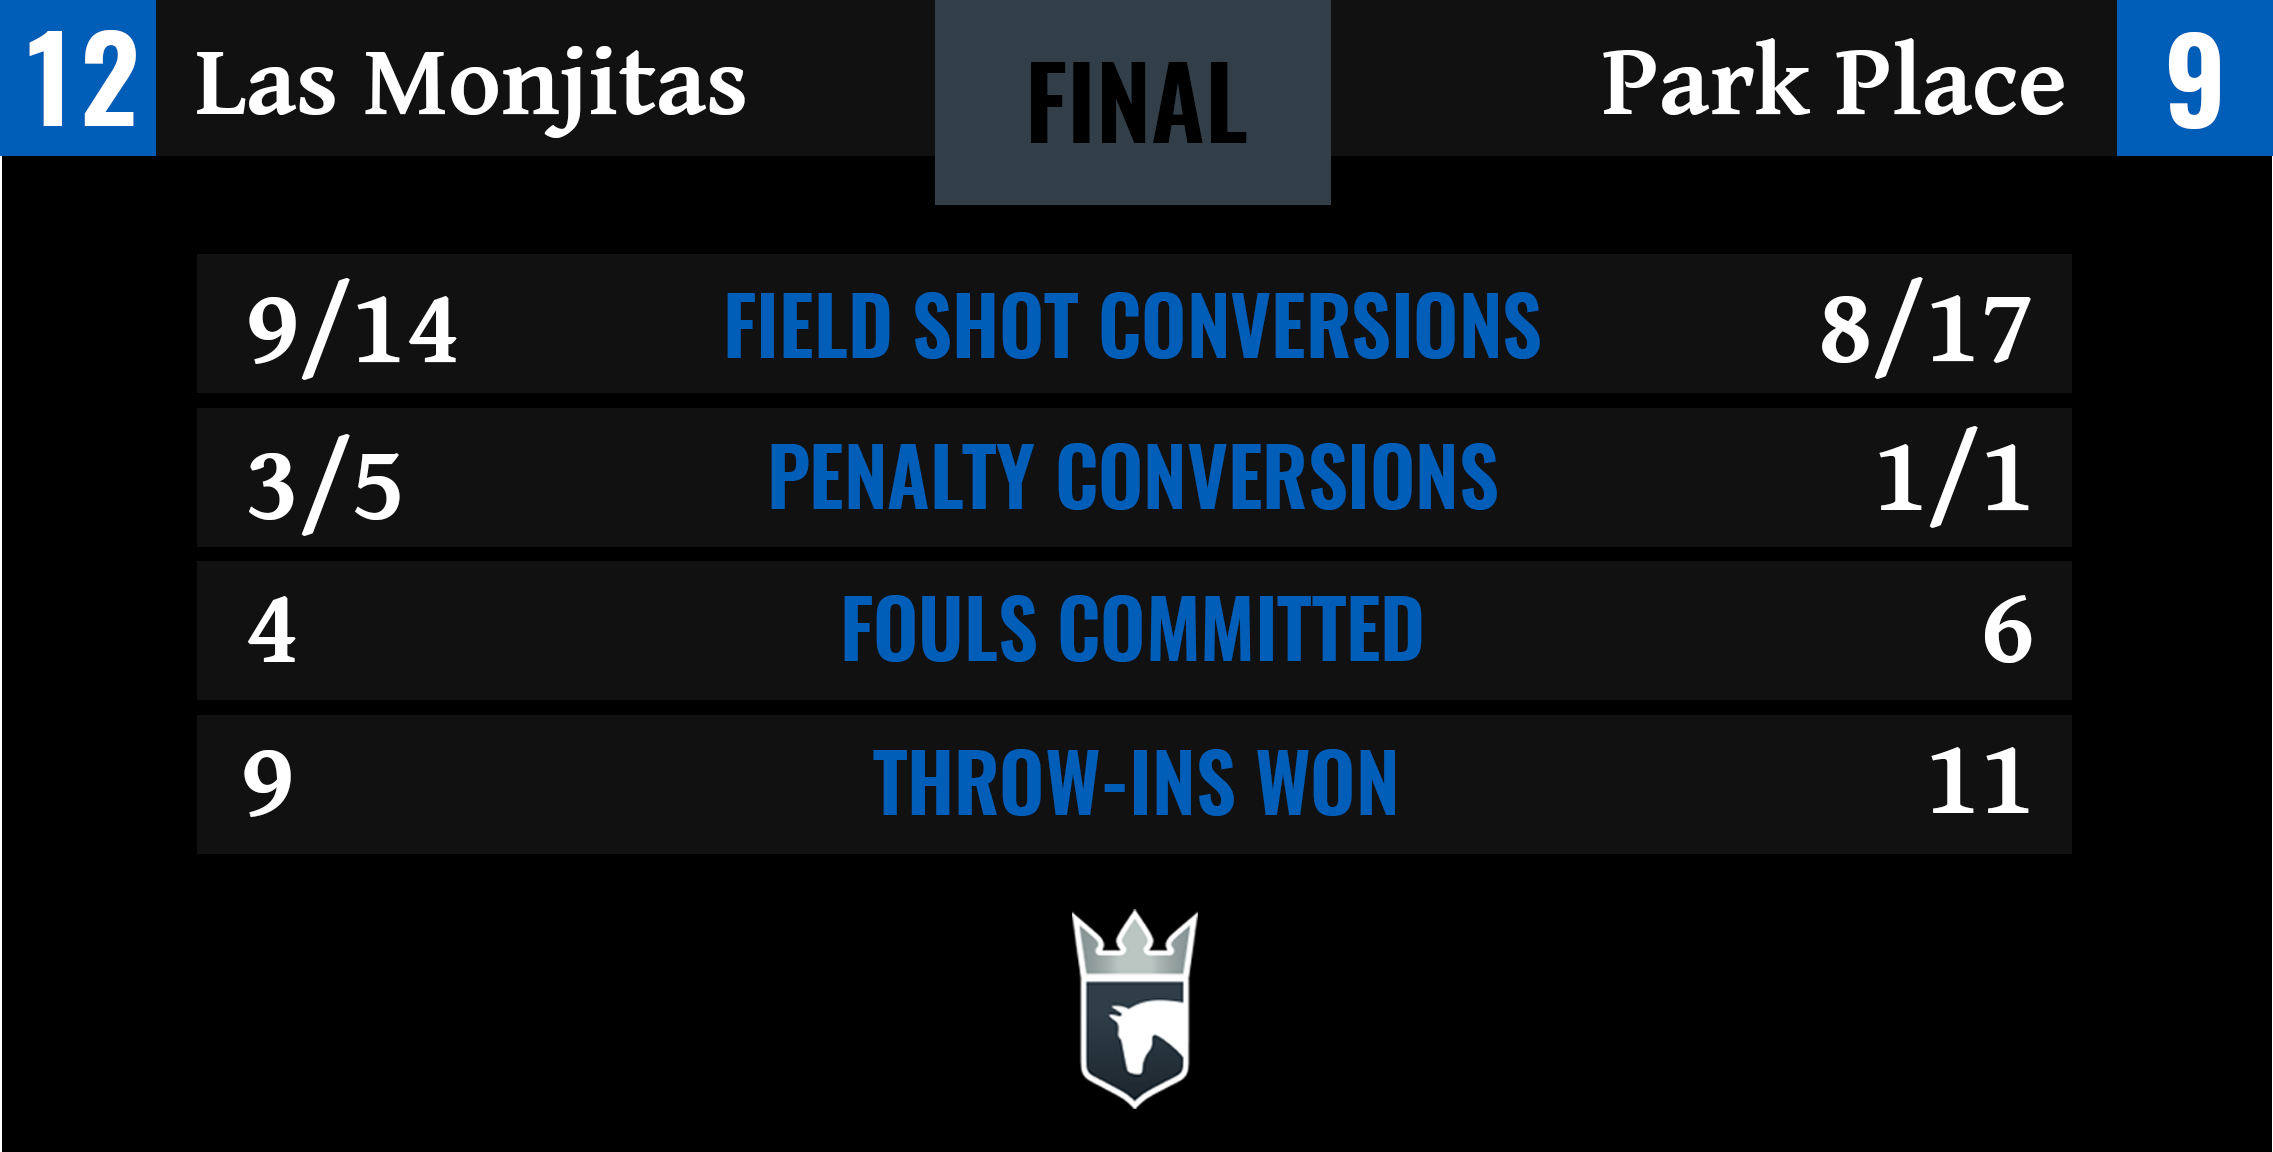 Las Monjitas vs Park Place Final Stats